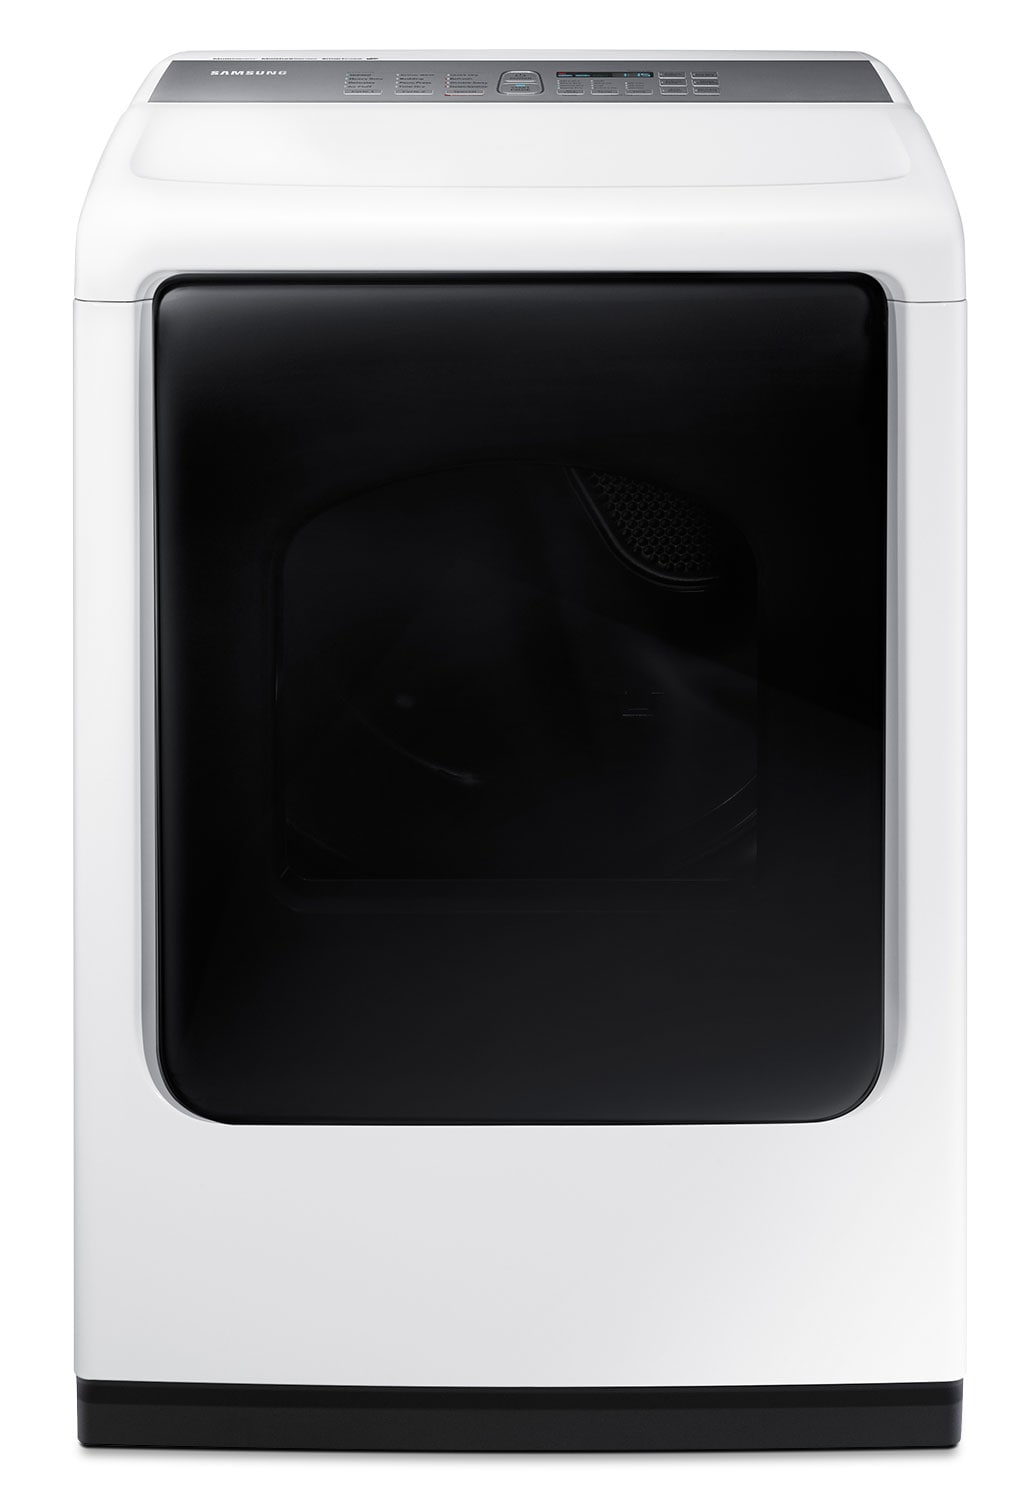 Samsung White Electric Dryer with MultiSteam™ (7.4 Cu. Ft.) - DV45K7600EW/AC